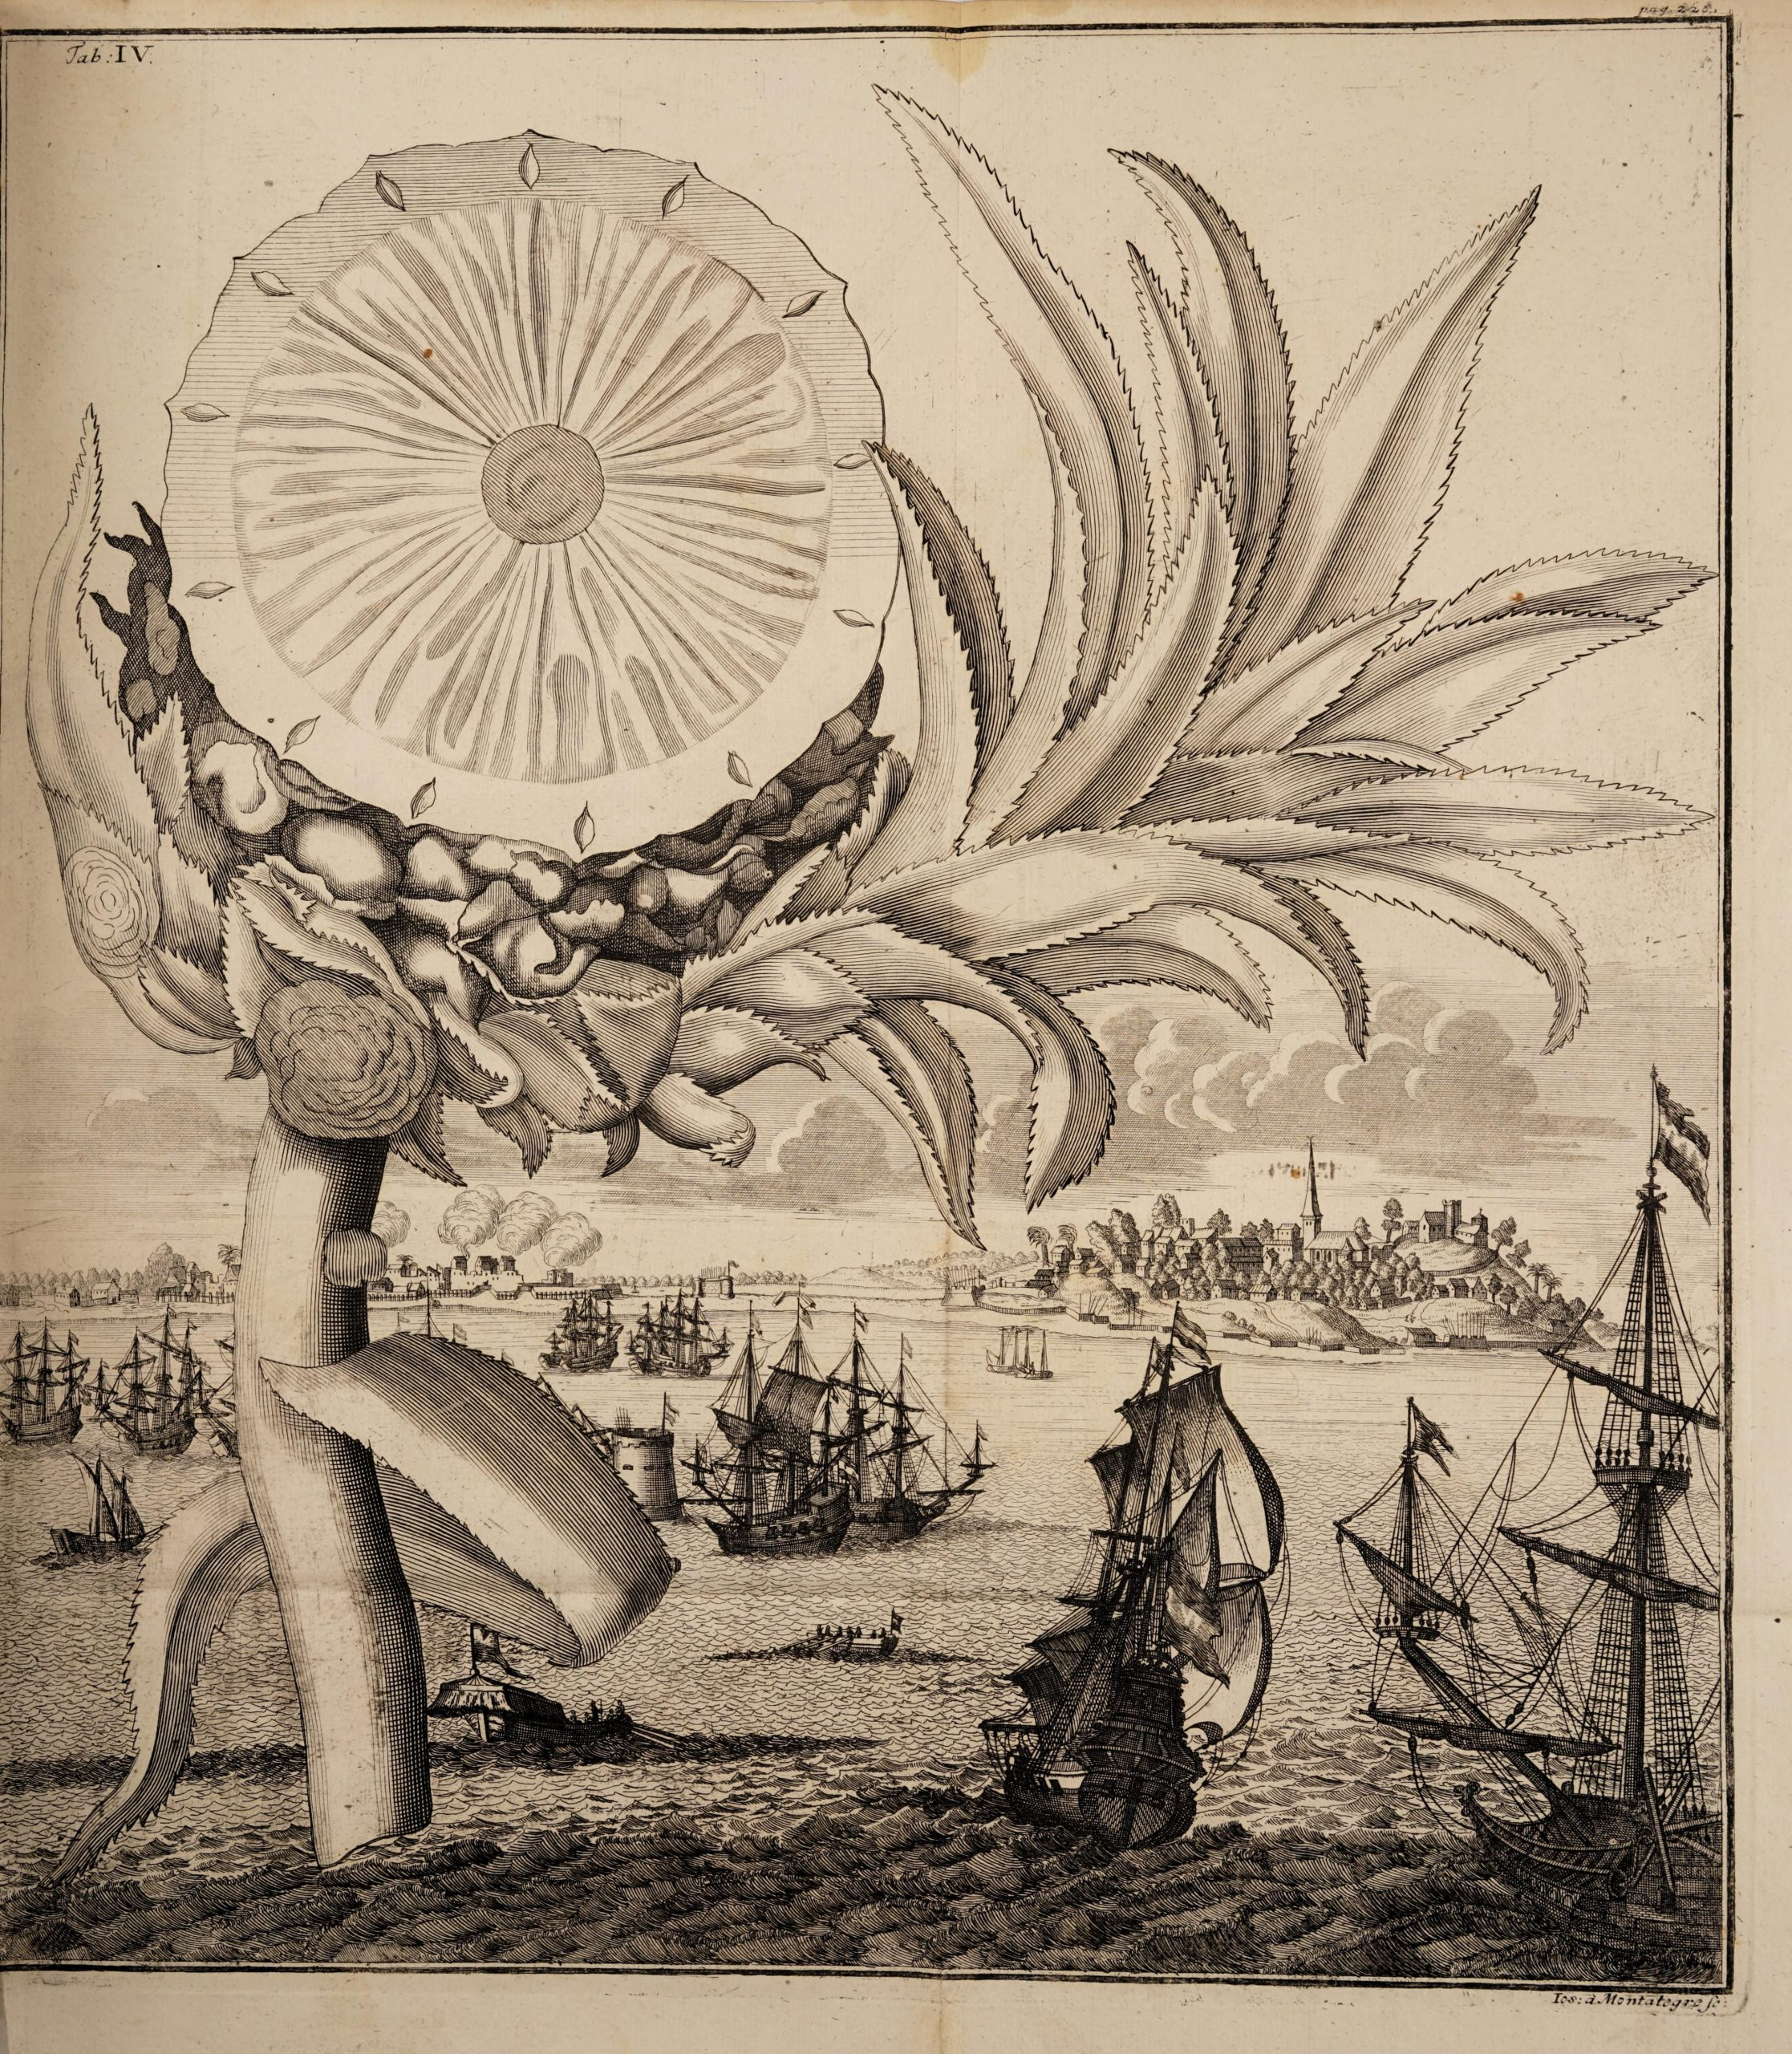 woodcut illustration of a sliced pineapple hovering above ships